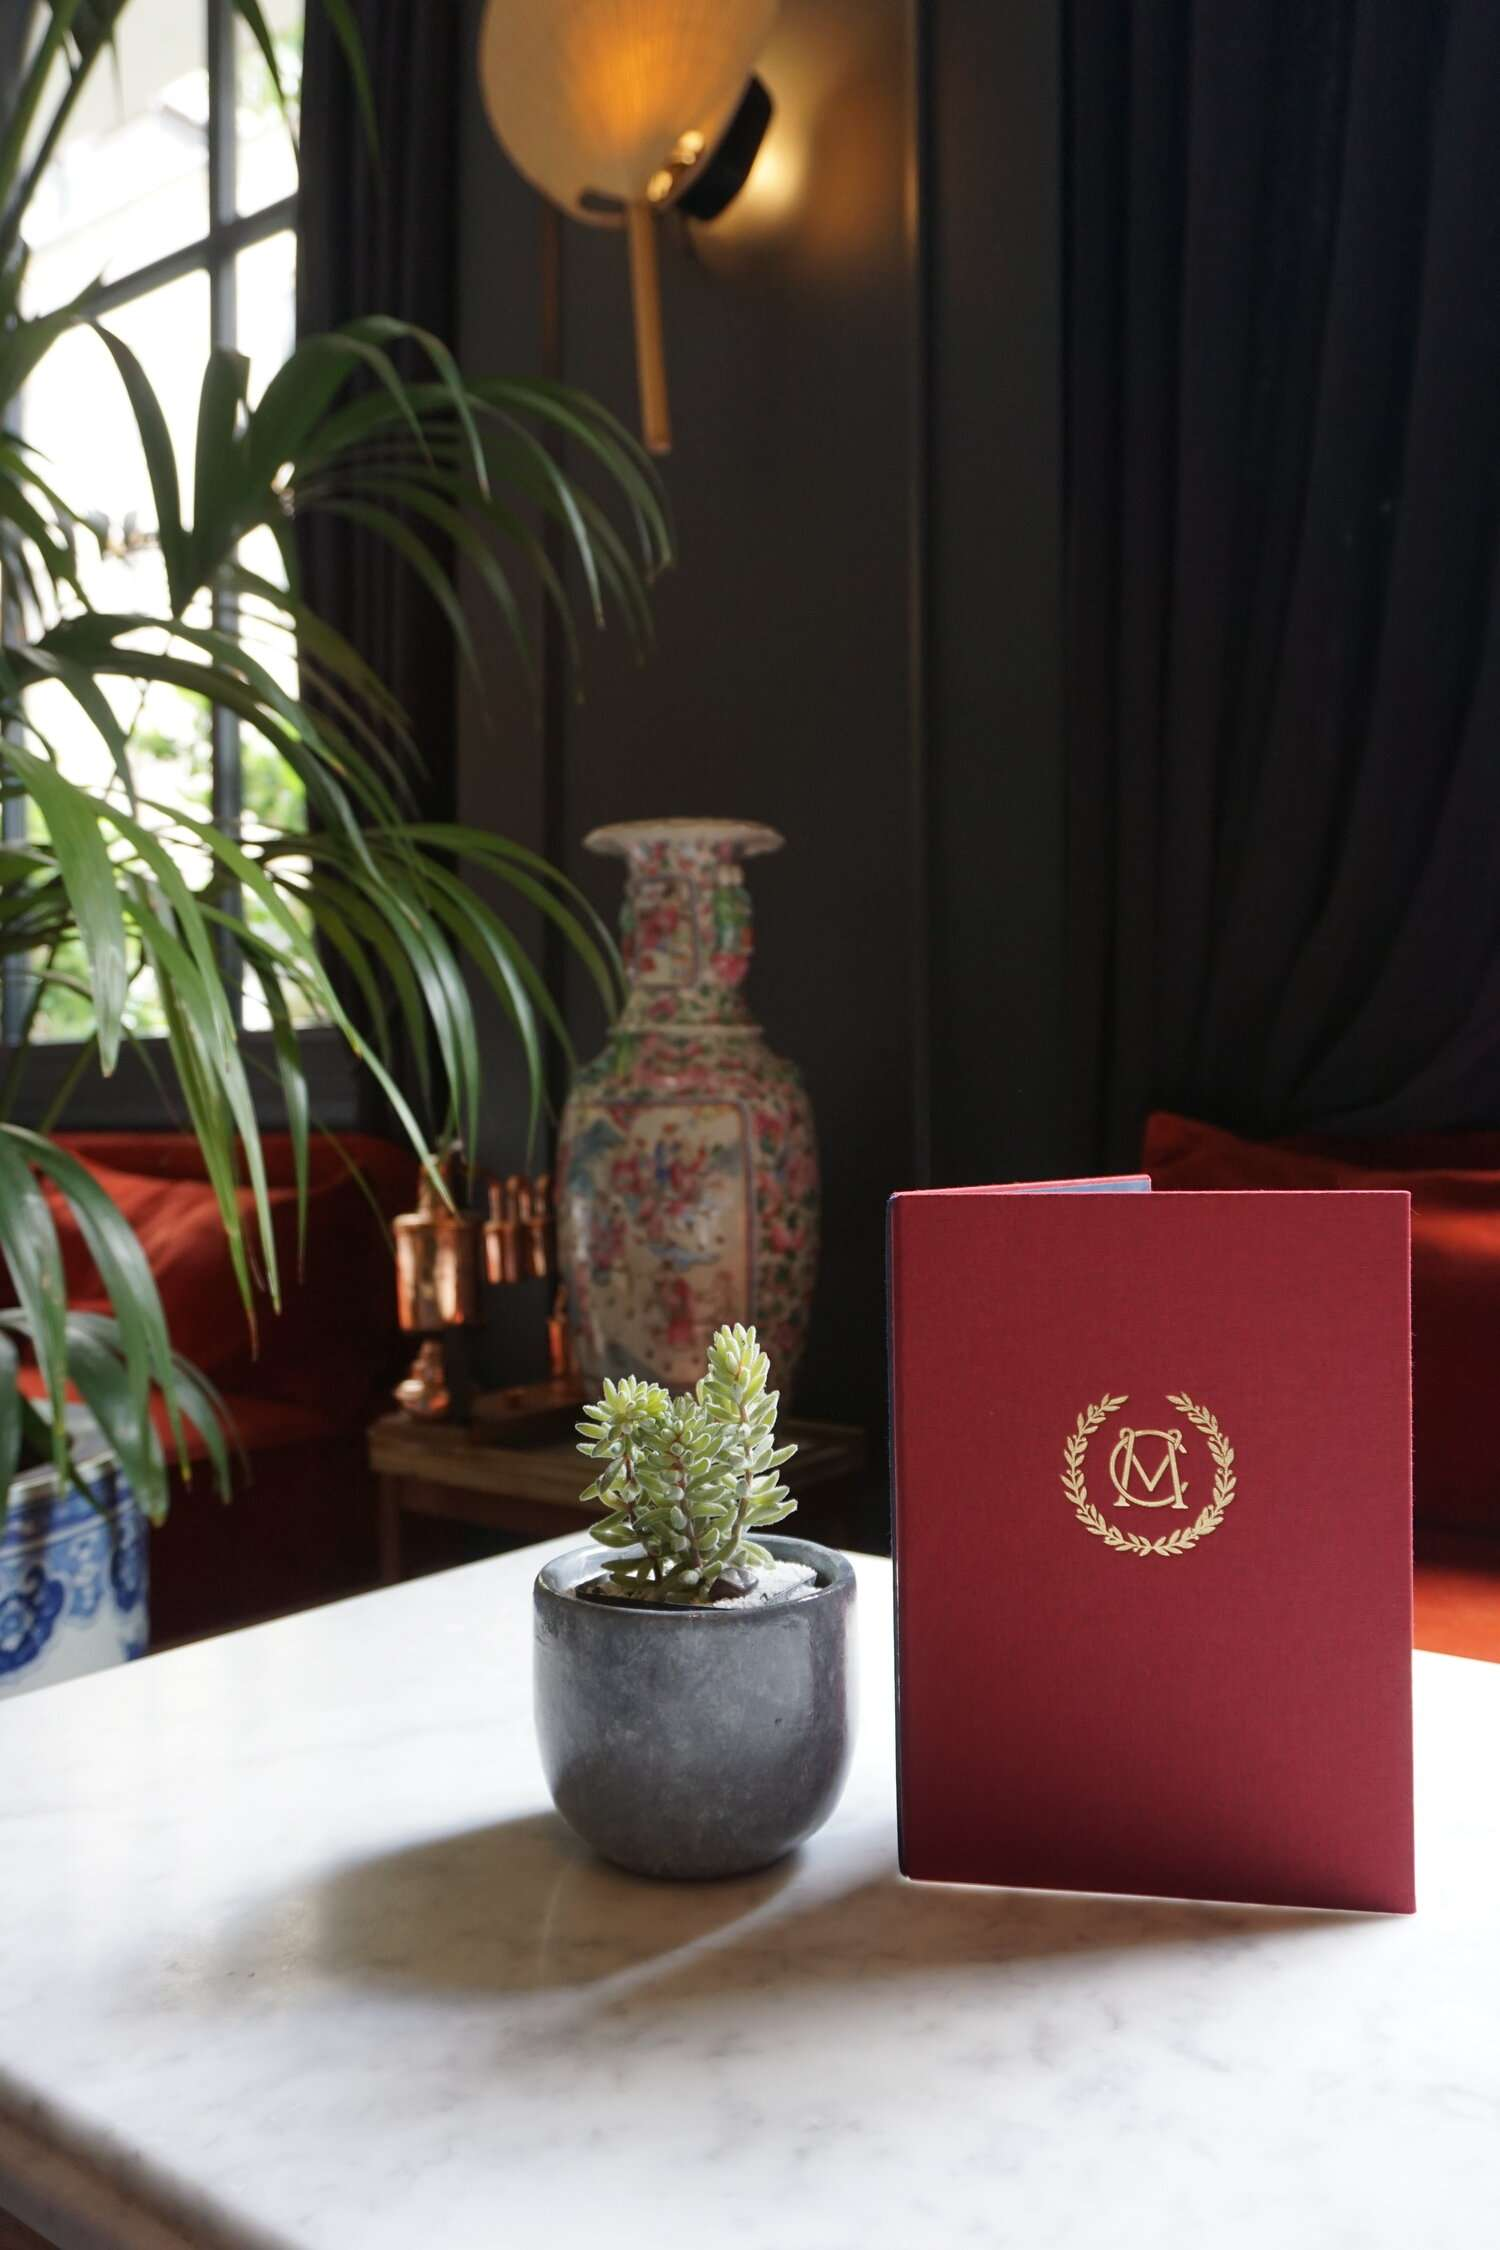 red menu beside a succulent on a table in the breakfast room at Hotel Monte Cristo Paris